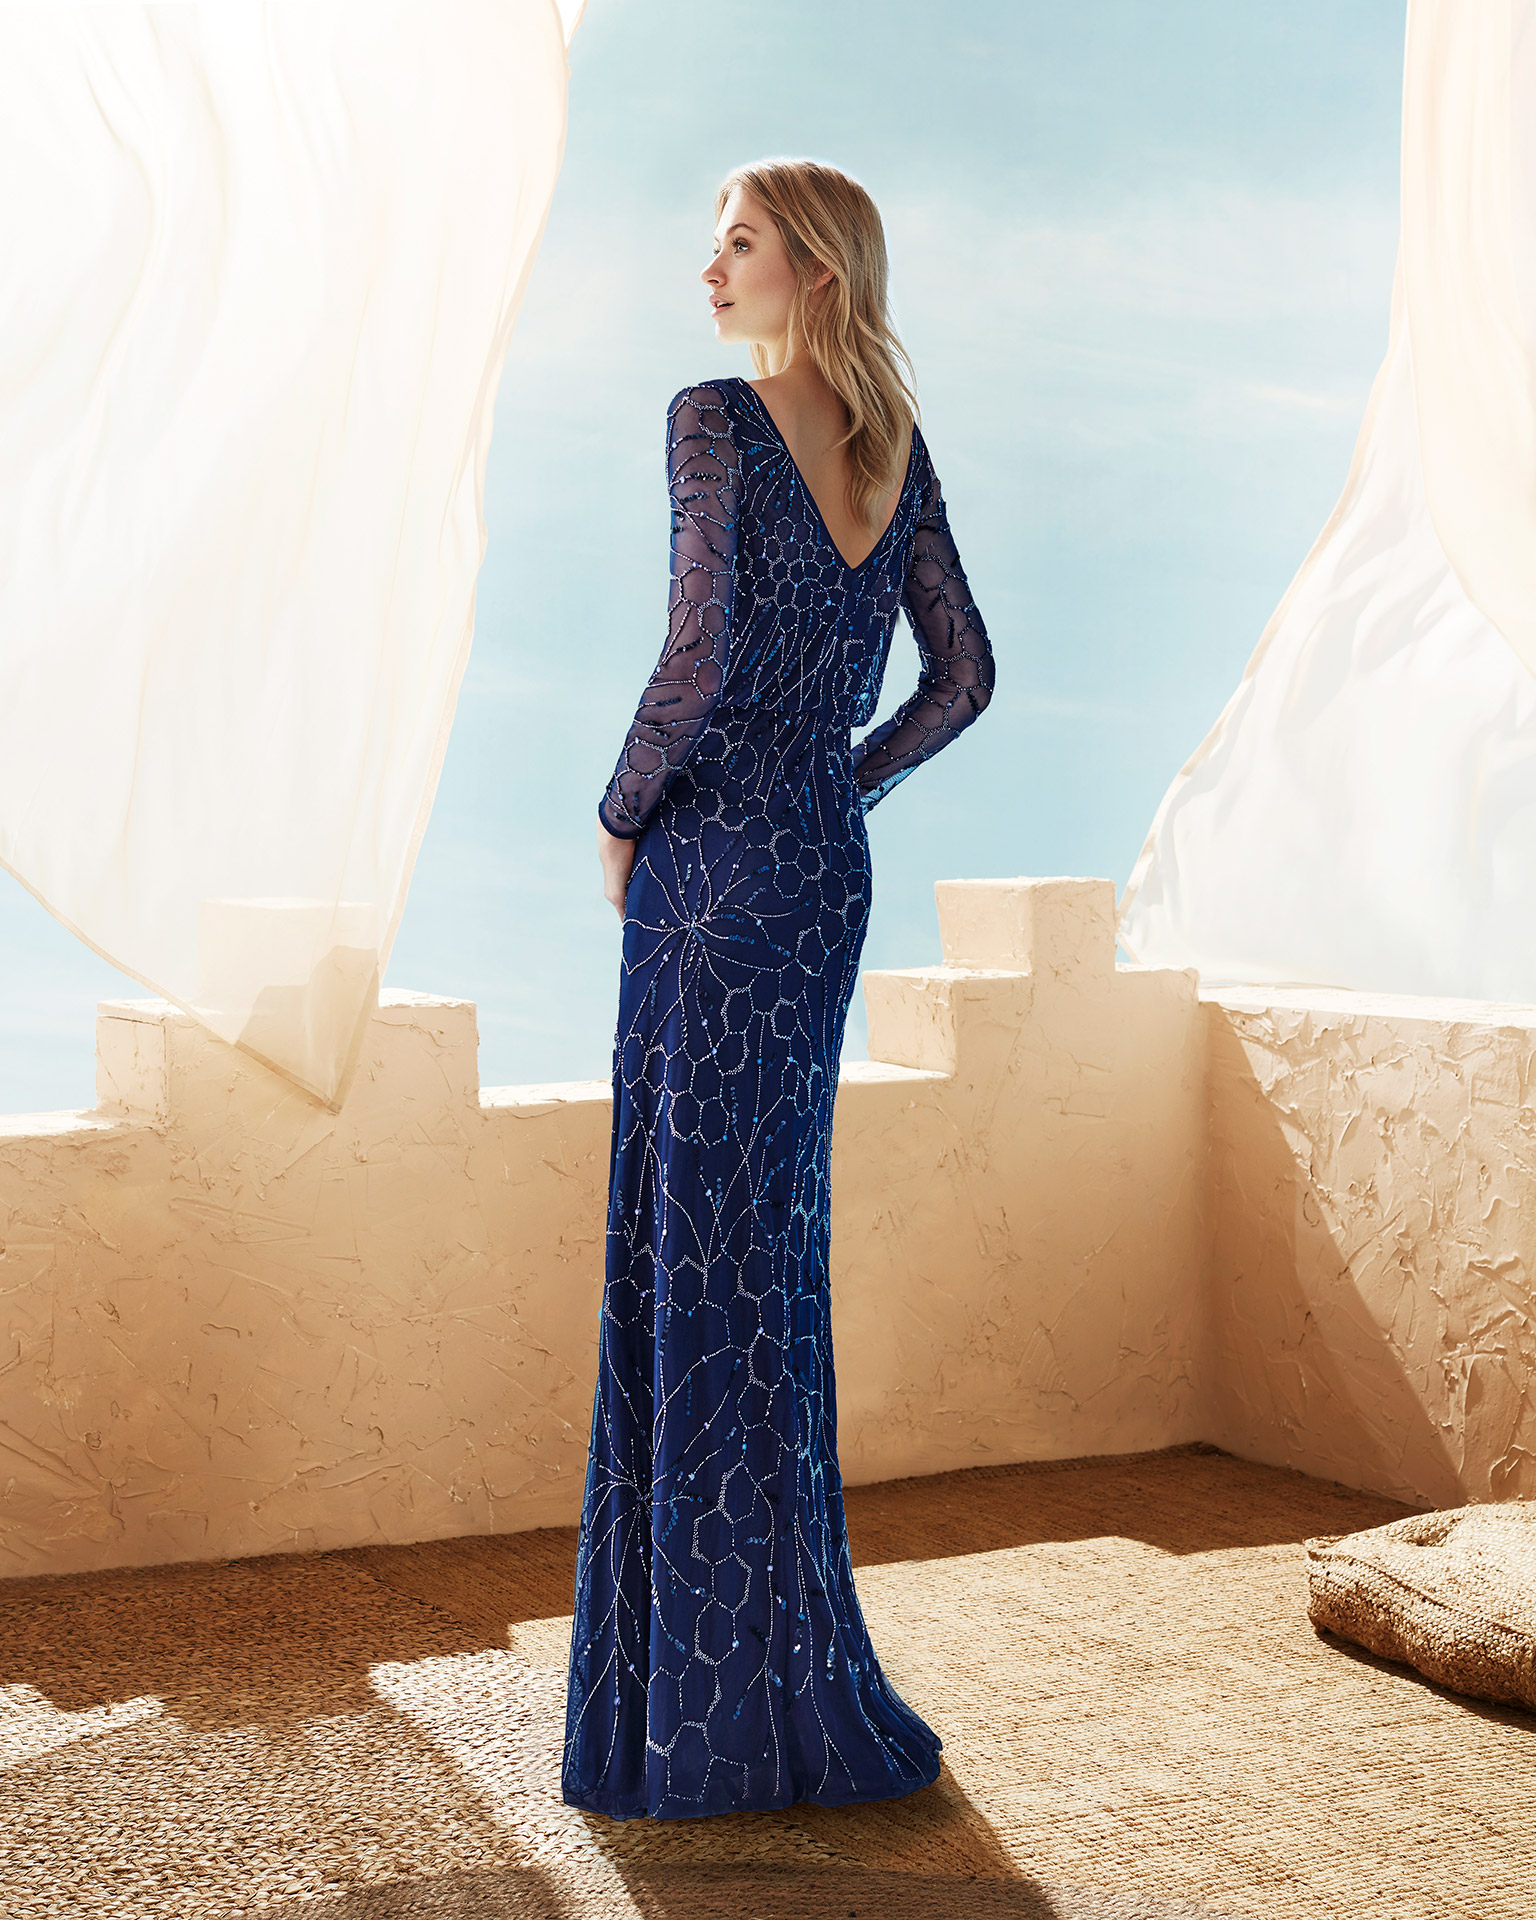 Long beaded bloused cocktail dress with V-back and long sleeves. Available in navy blue, nude/silver and red. 2020 MARFIL BARCELONA Collection.